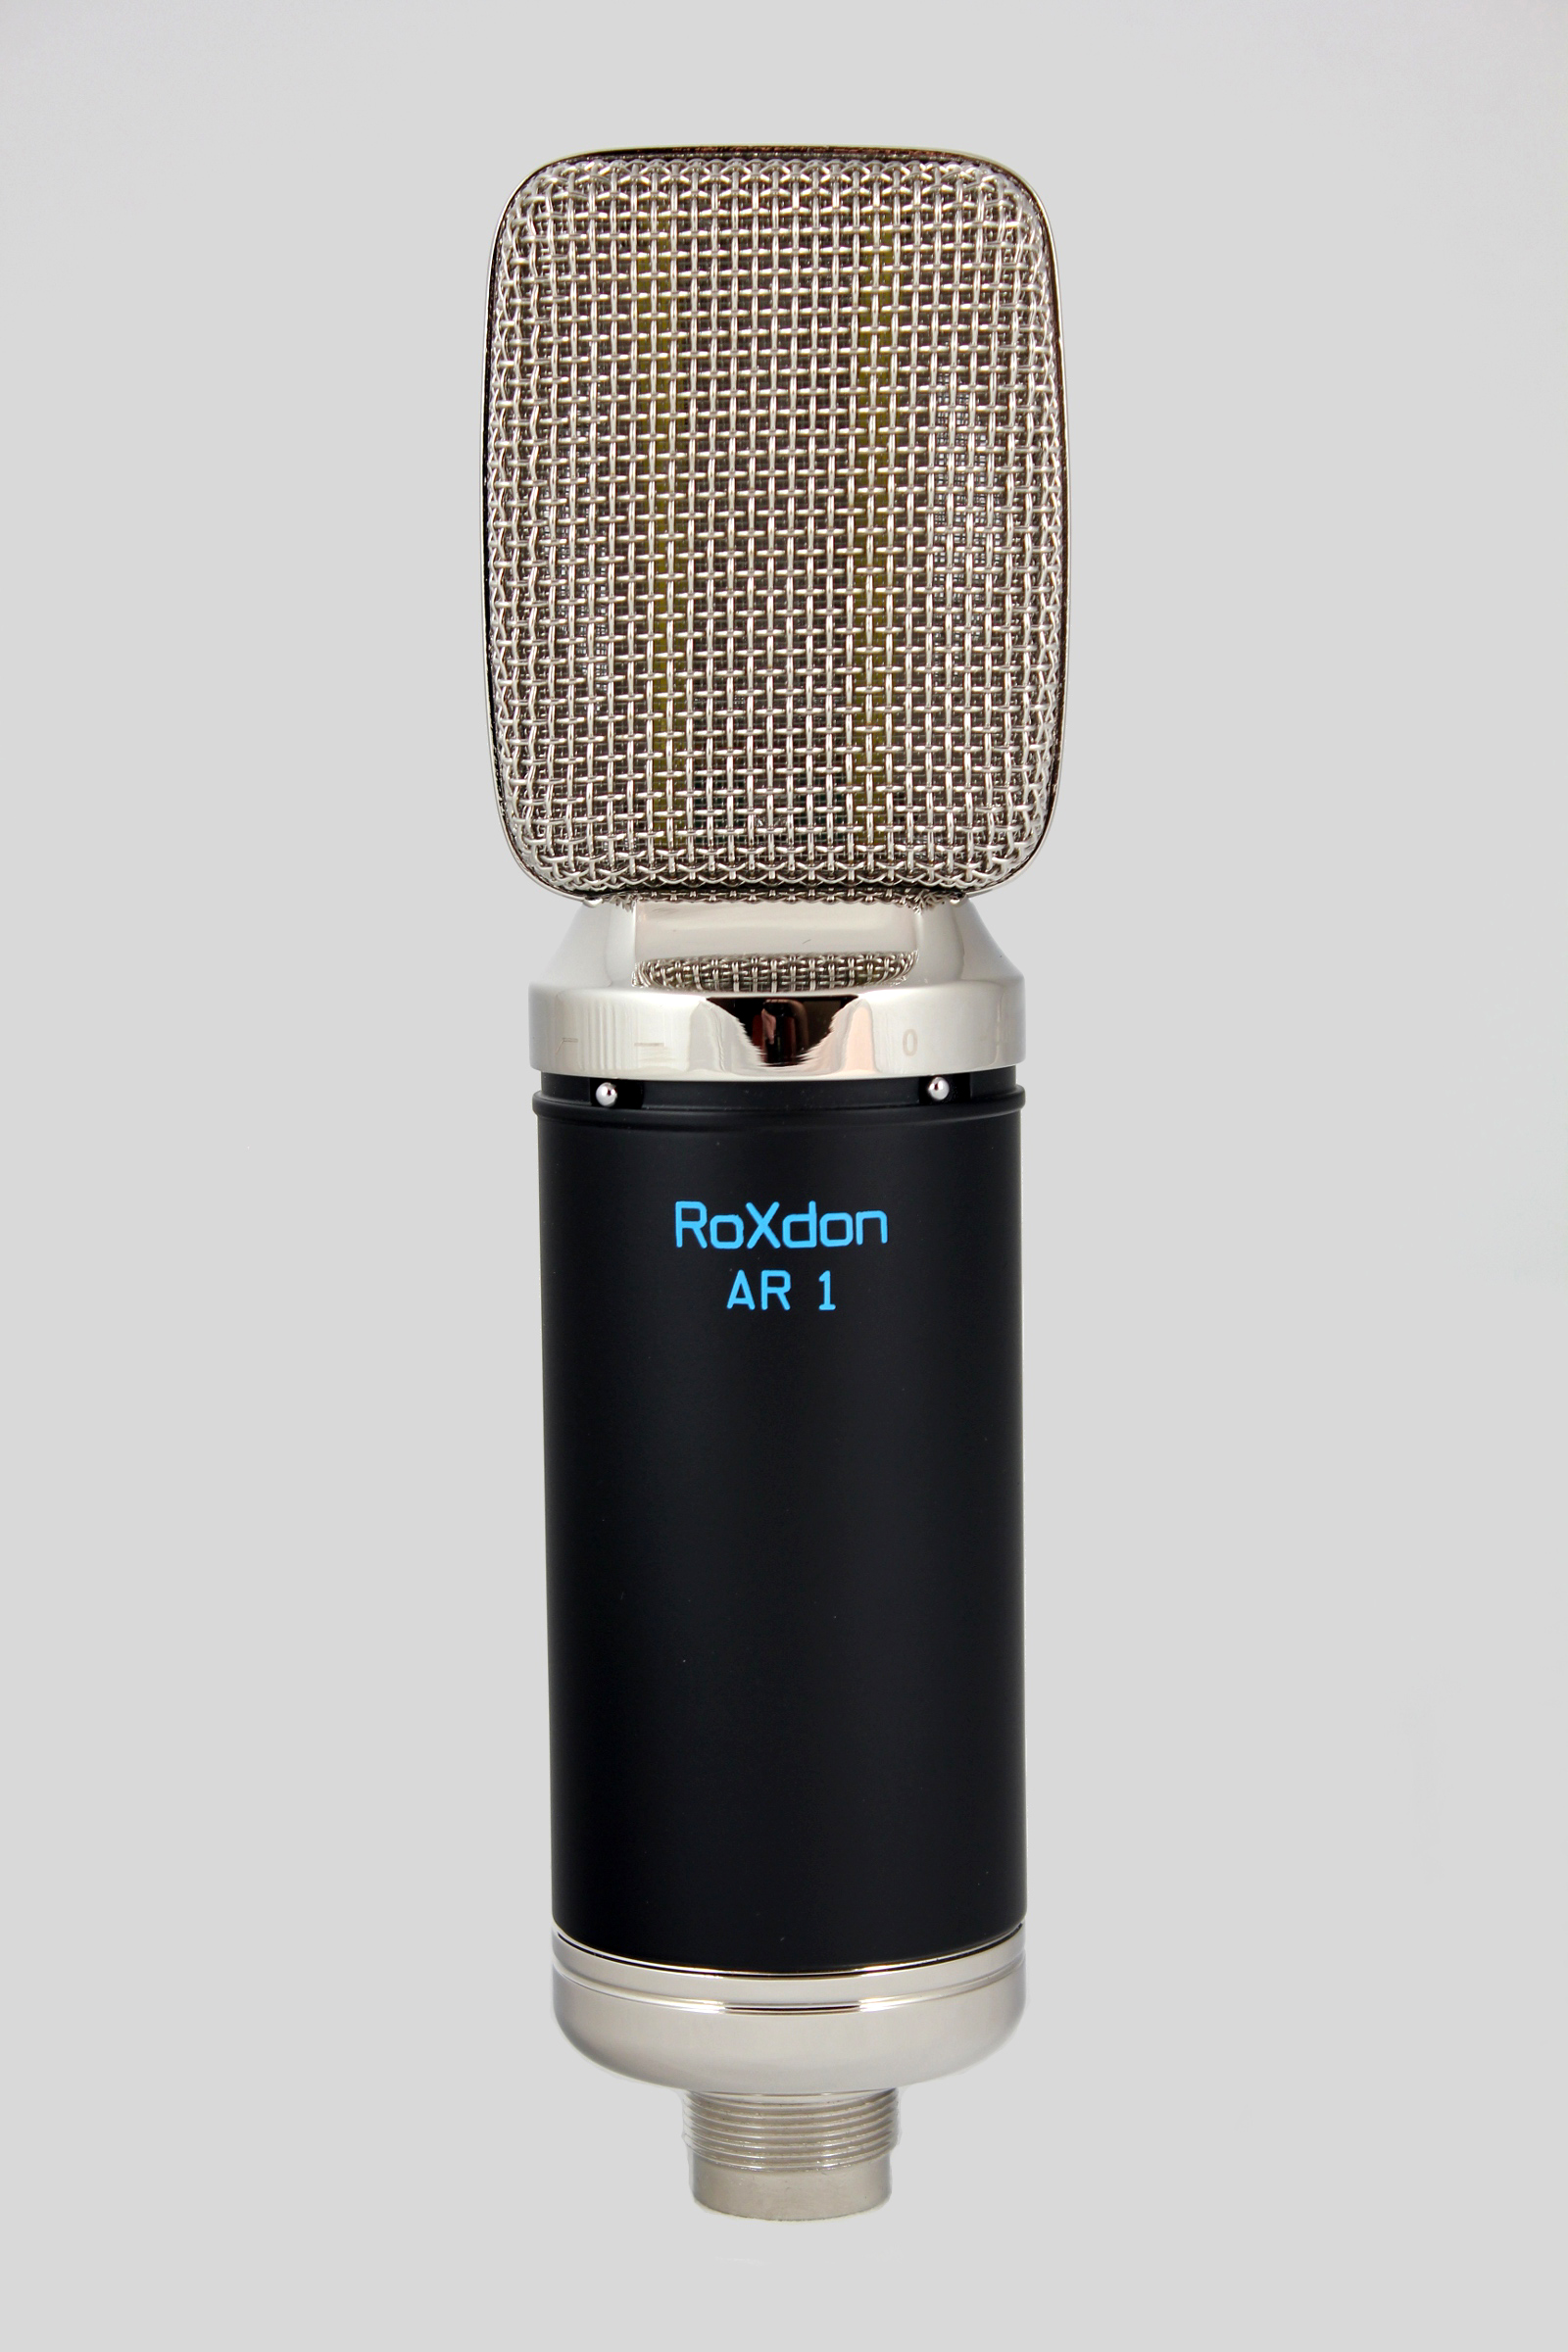 Roxdon Ar 1 Active Low Noise Studio Ribbon Mic Microphone Ebay Power Pc Microphones From P48 Or Phantom 48 Volts Item Specifics